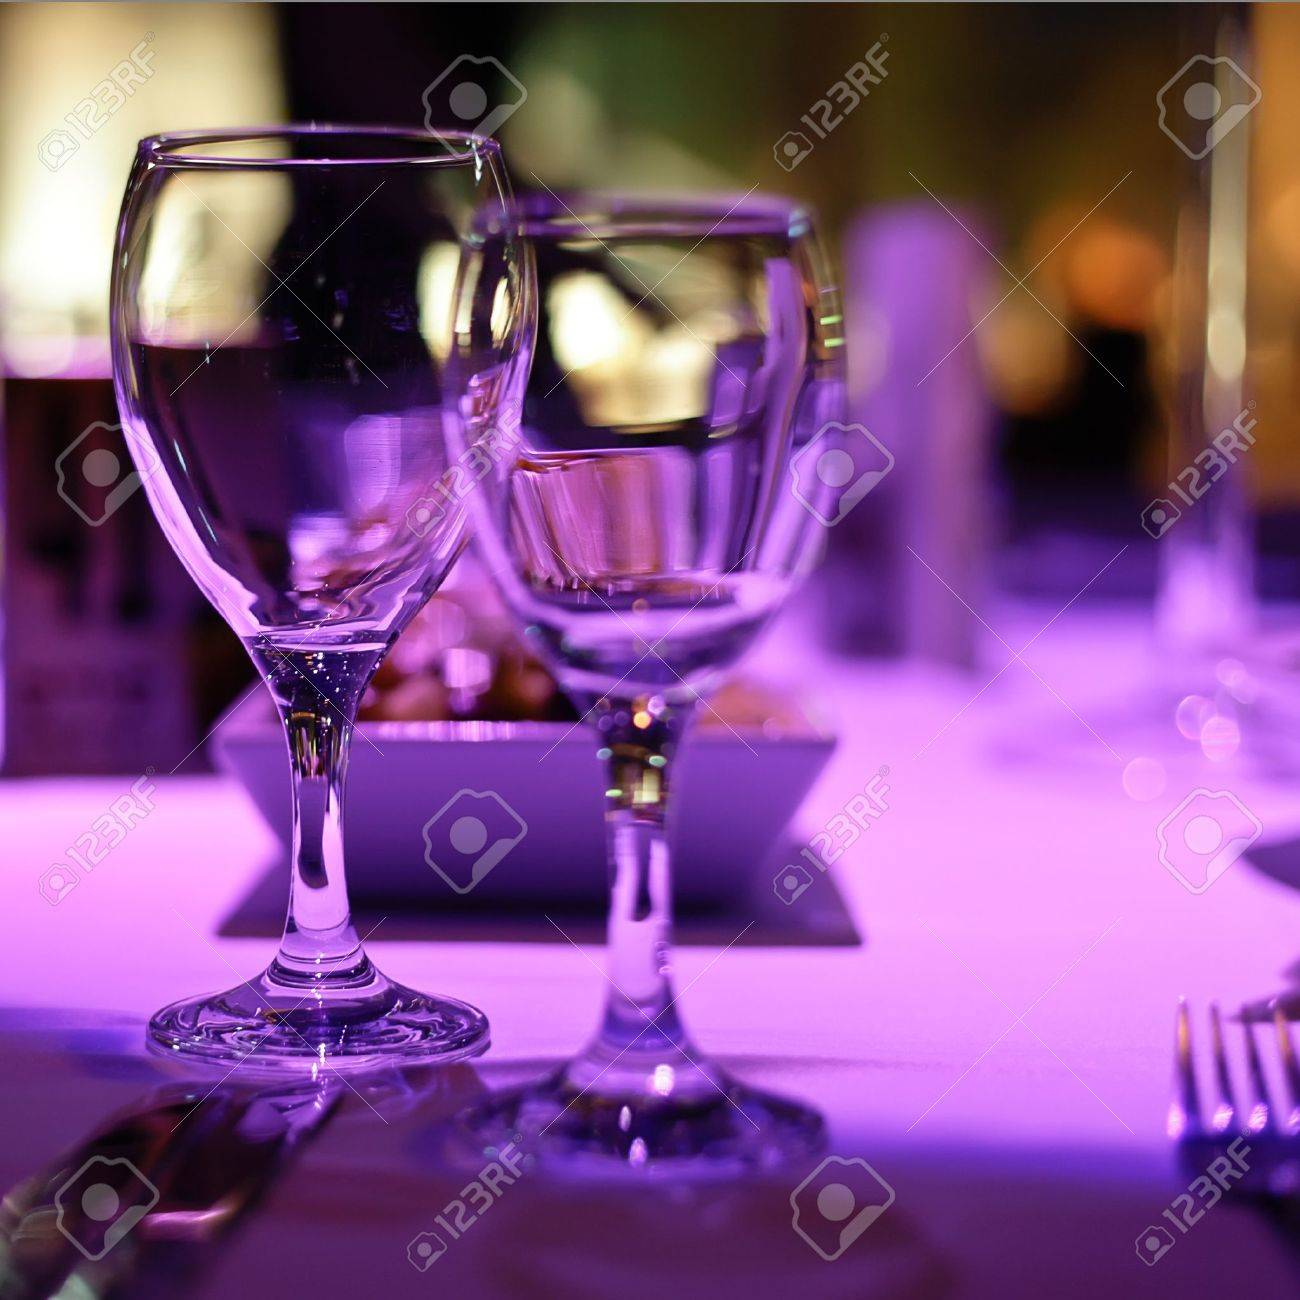 Table decorated for romantic dinner for two. Stock Photo - 12854590